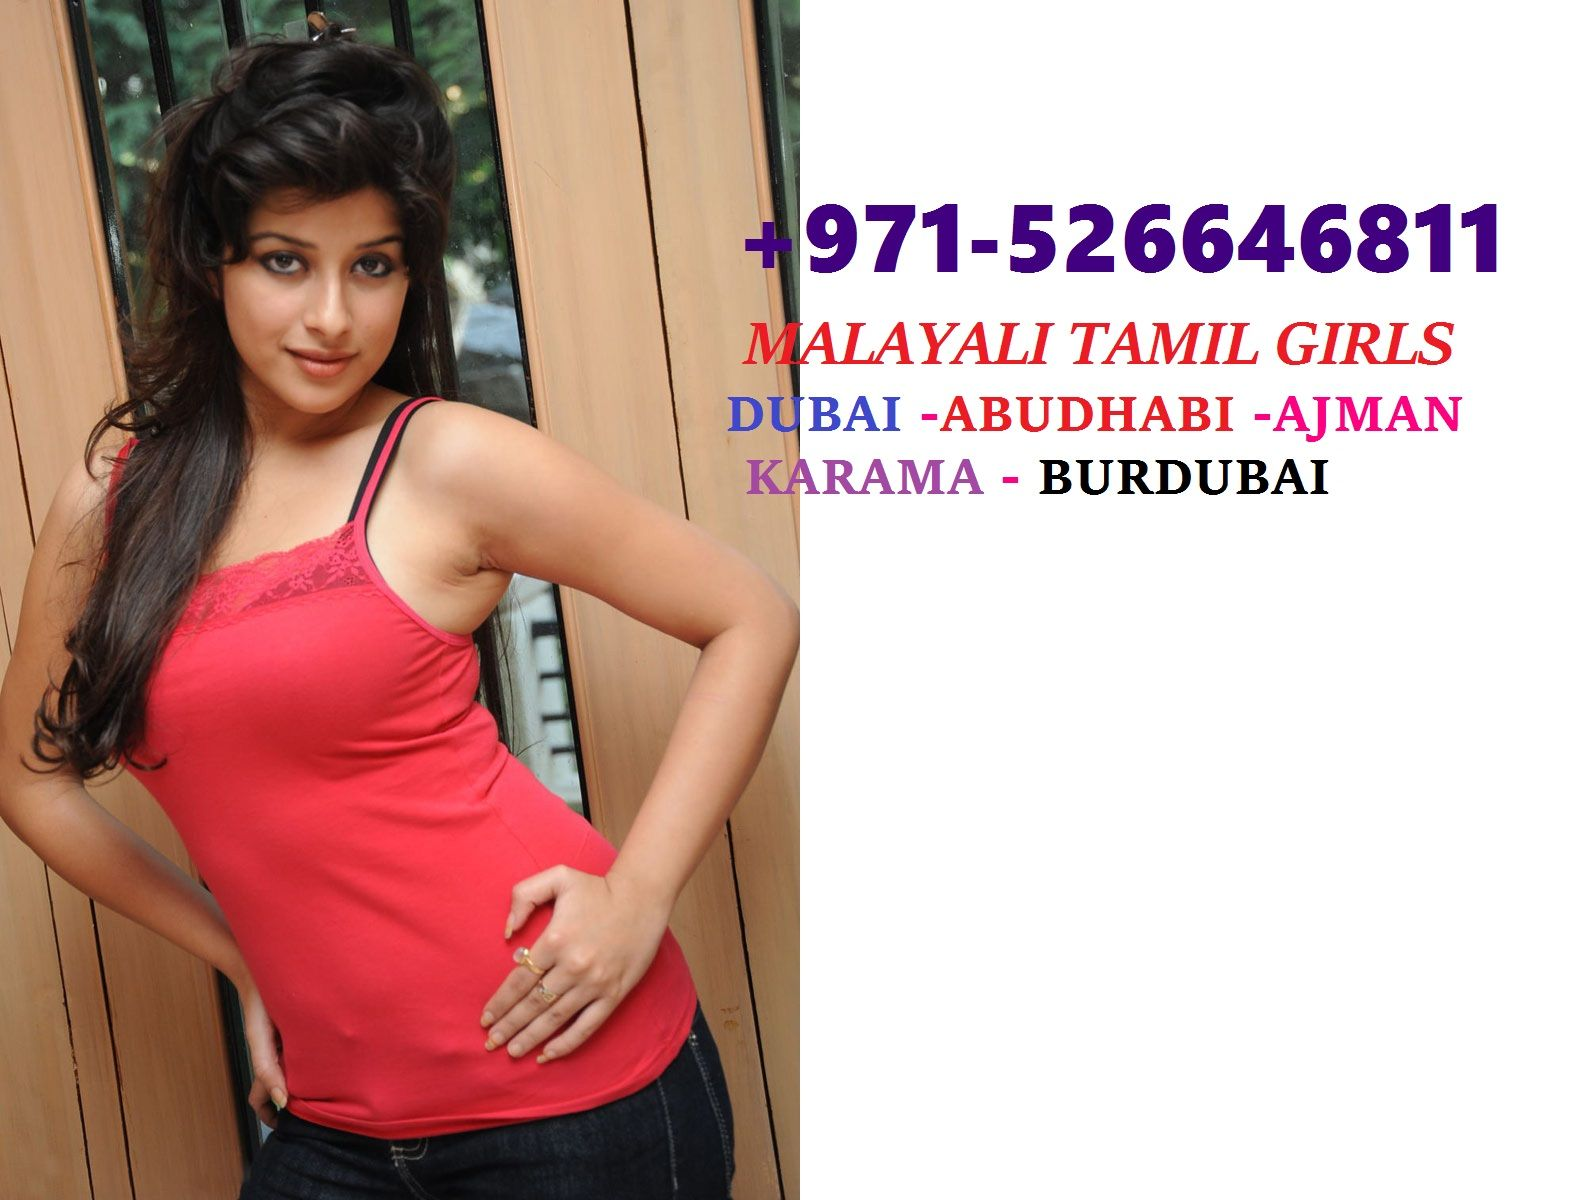 I want phone number of girl